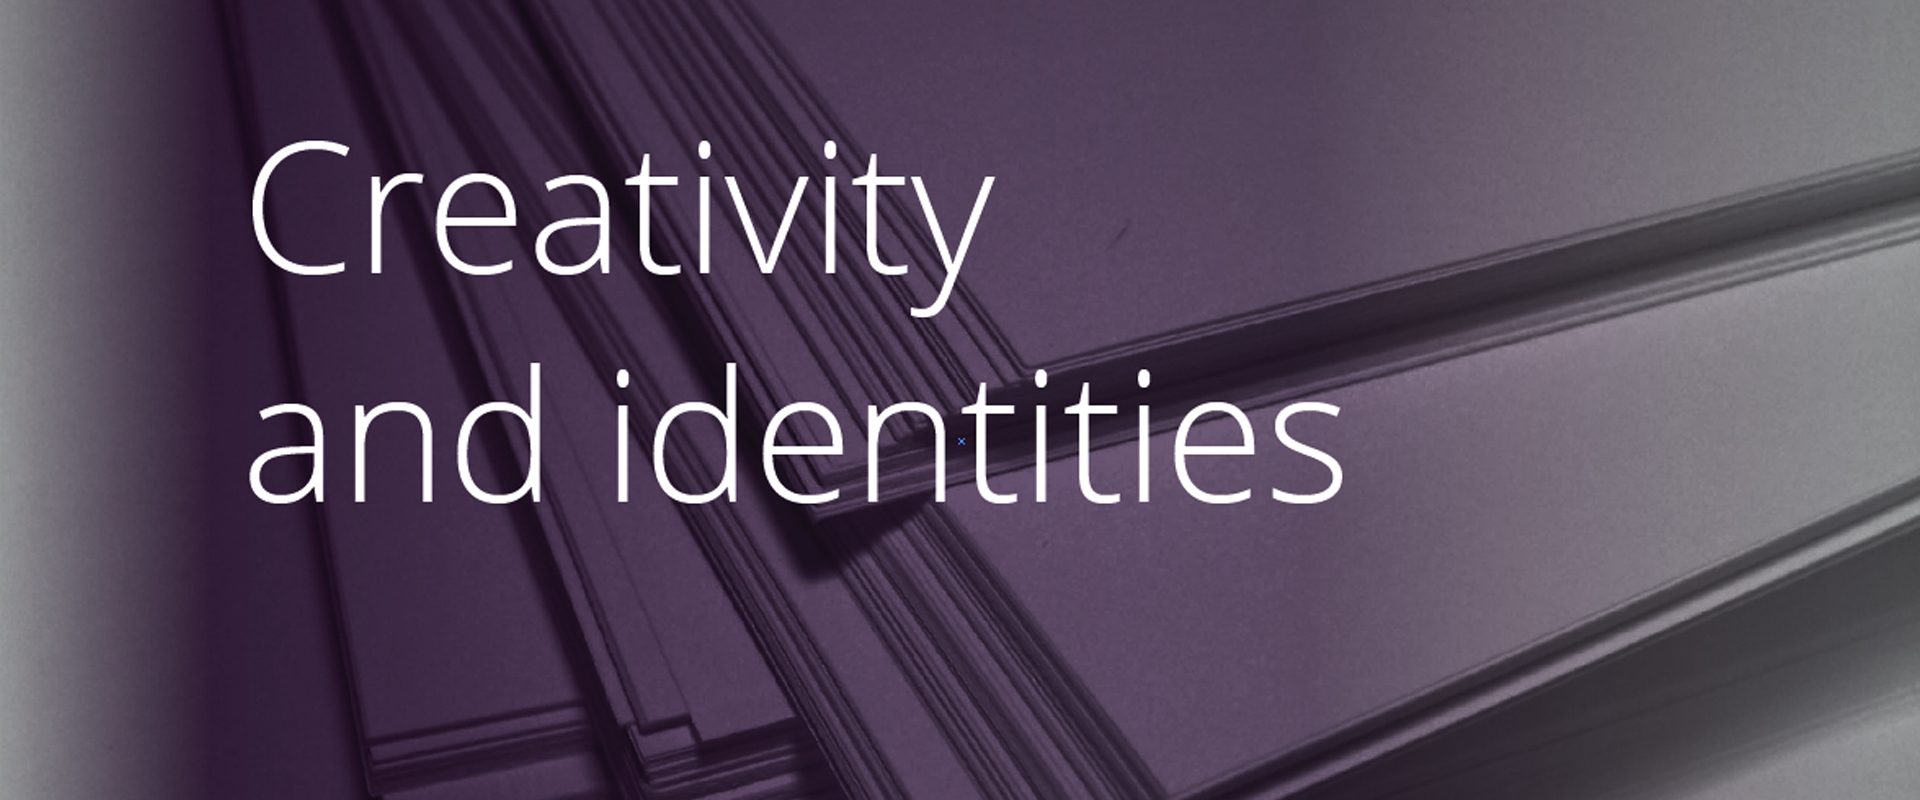 Creativity and identities